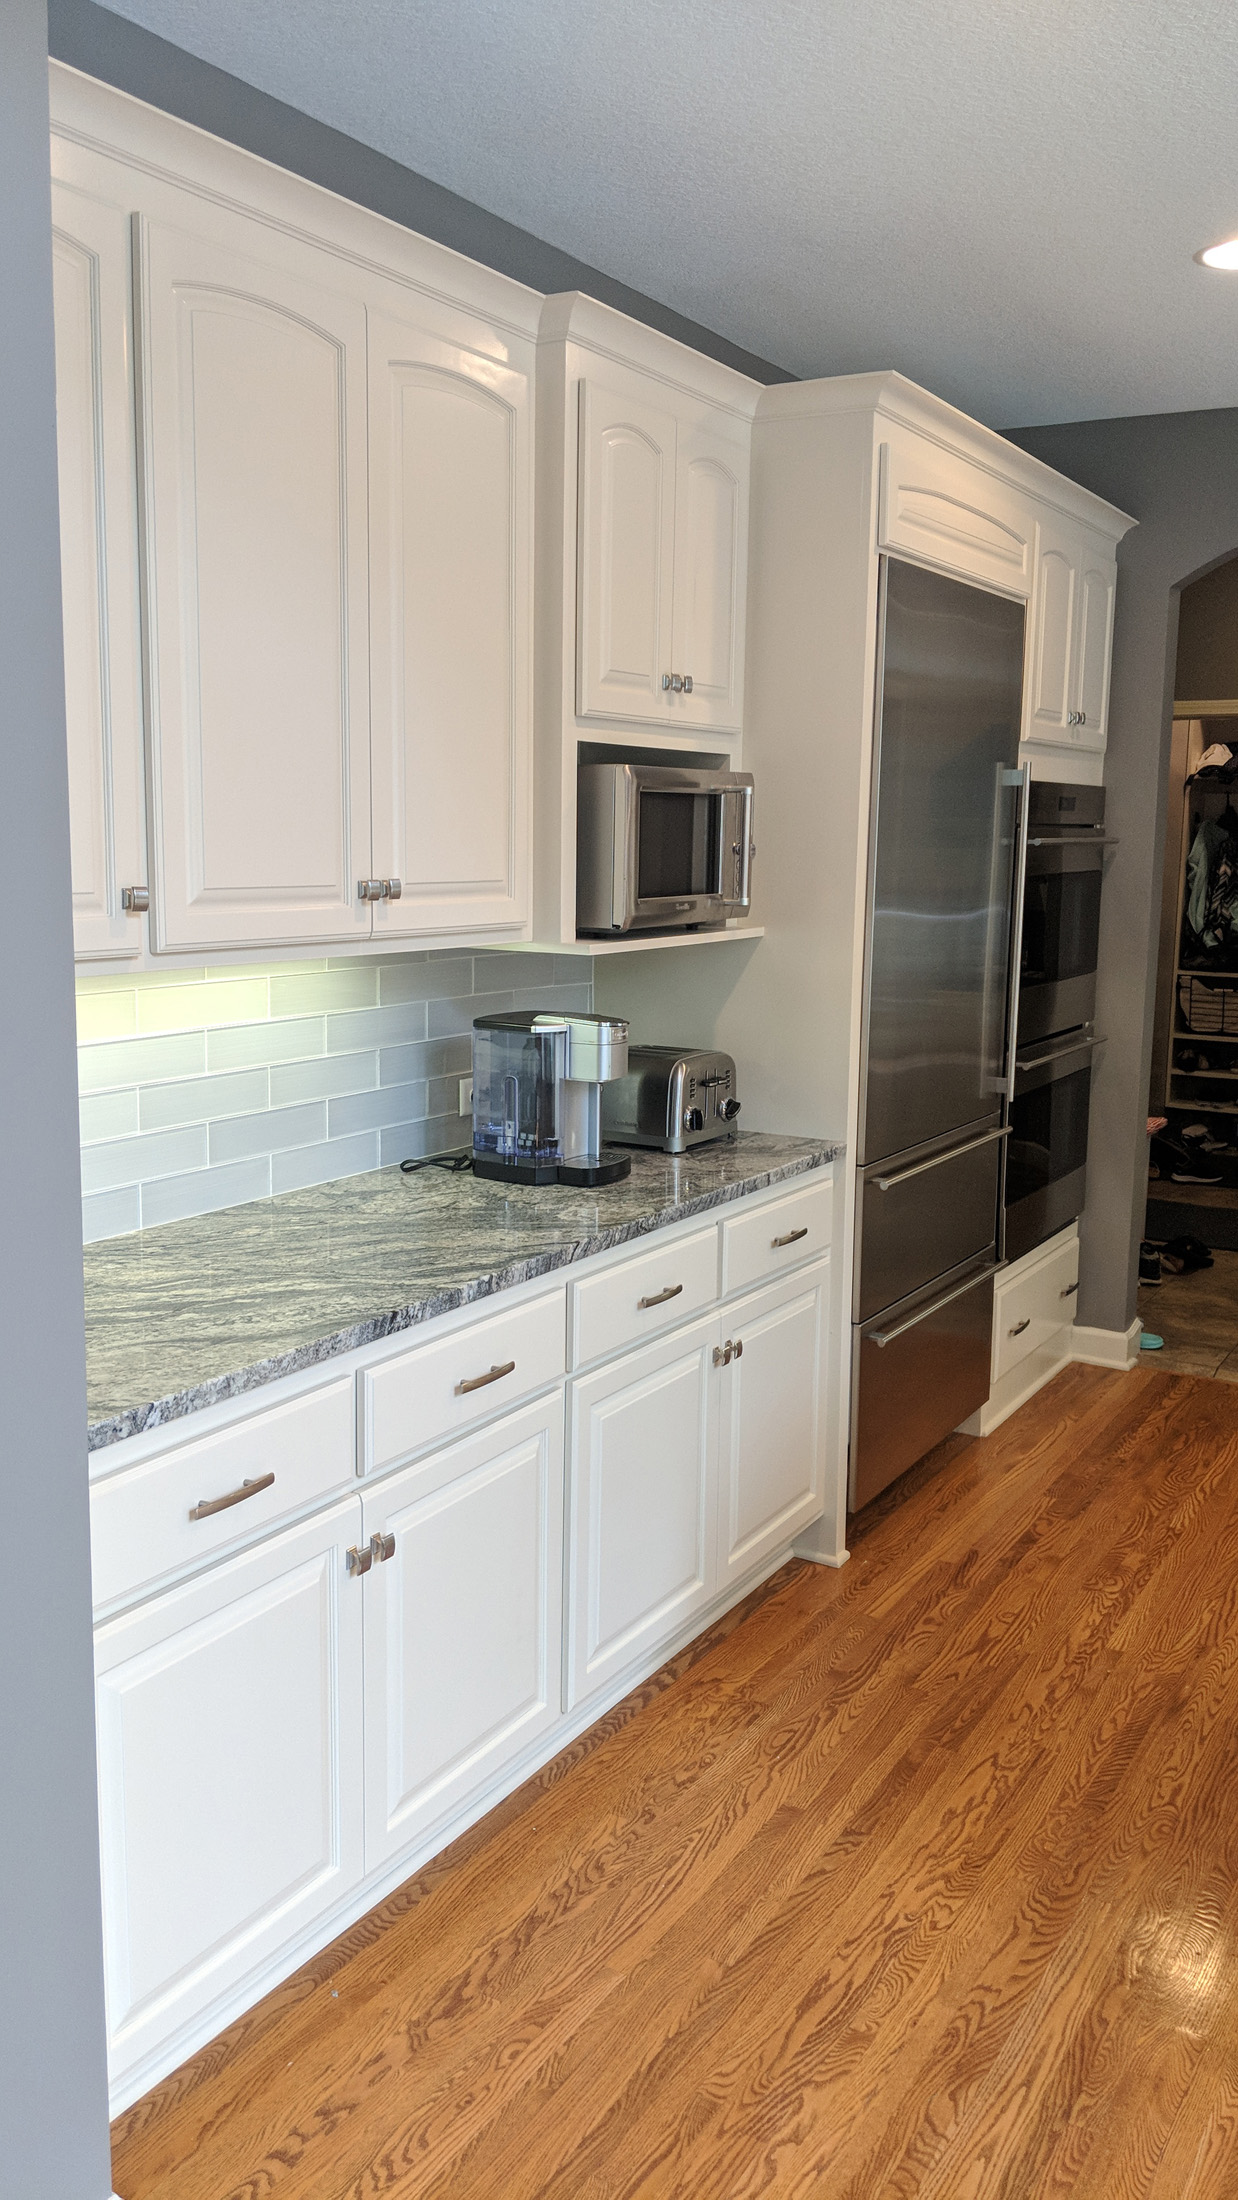 After - New appliances & enameled cabinets